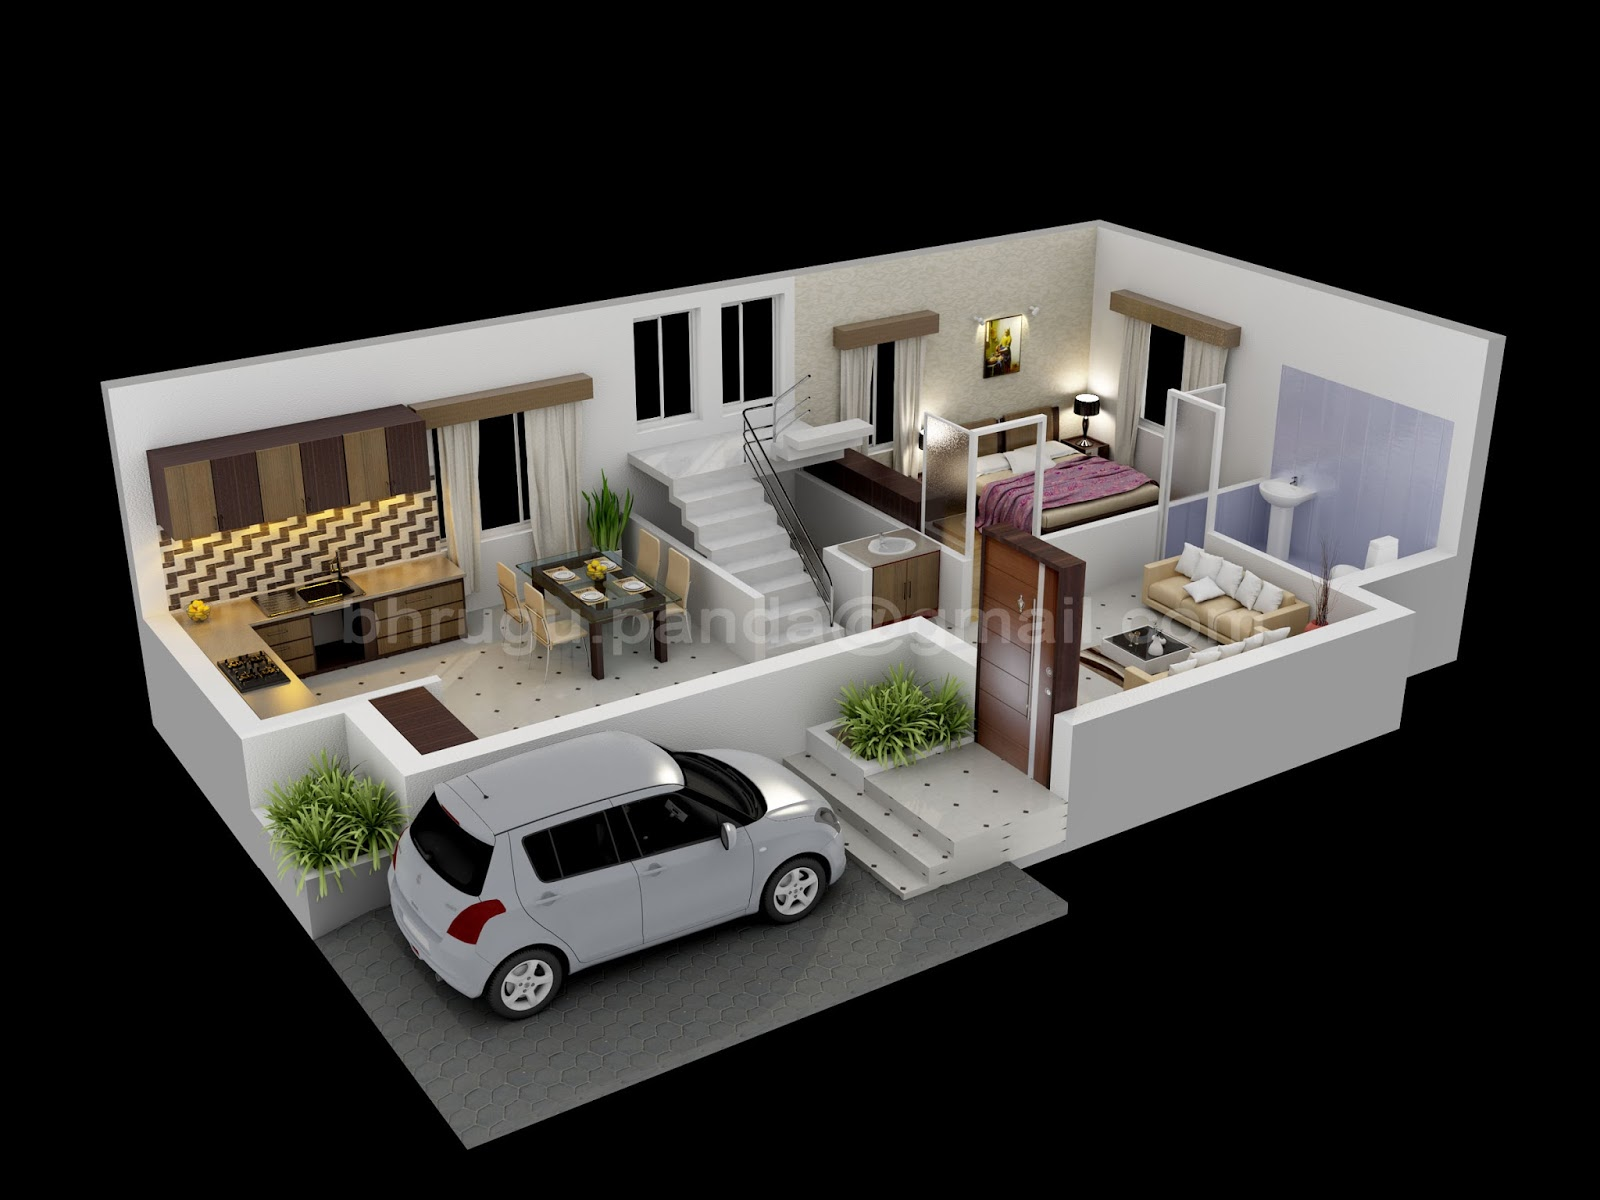 3DS Max Floor Plan on Unique House Plans Ranch Style